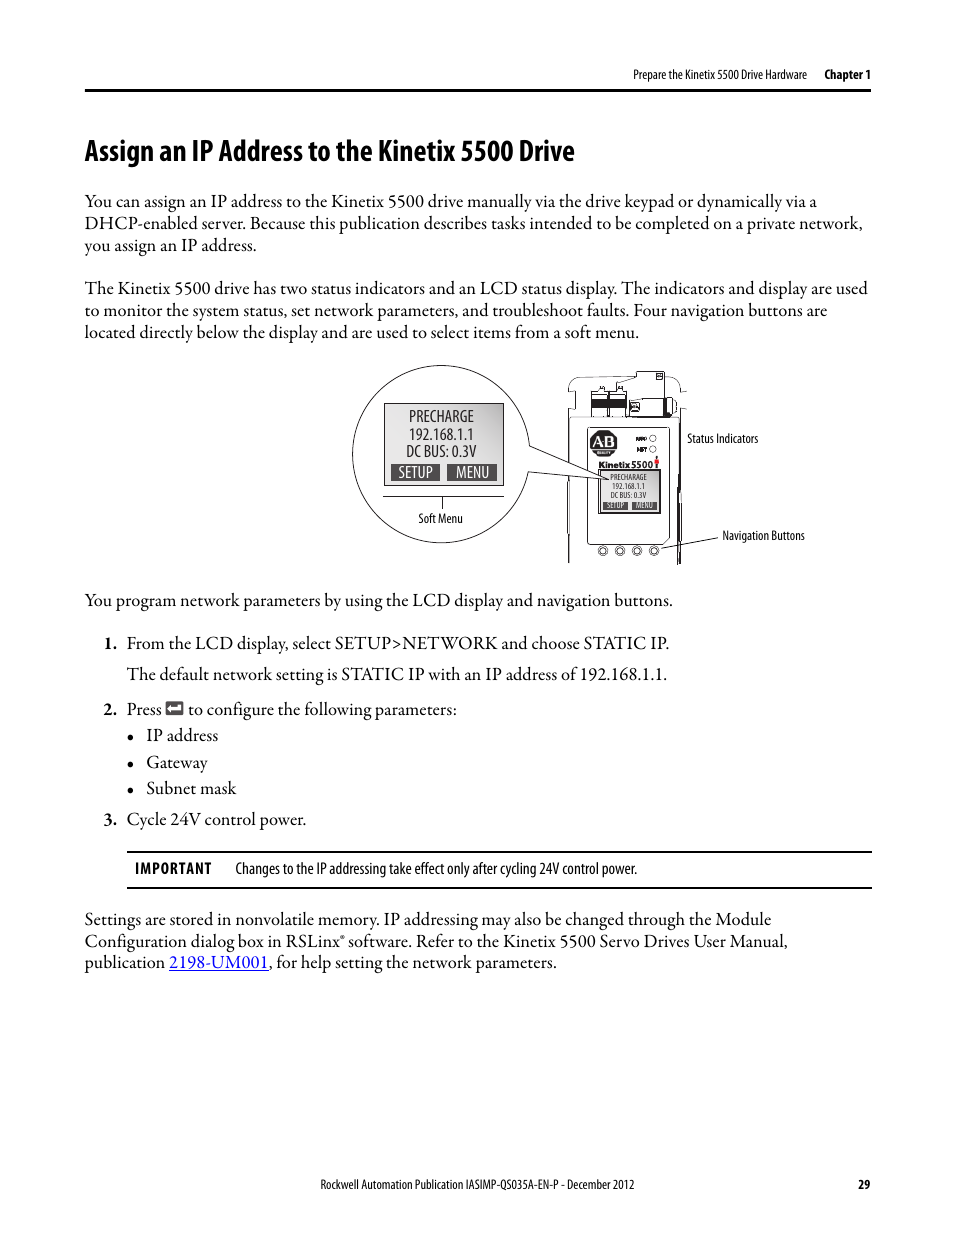 Assign an ip address to the kinetix 5500 drive, Assign an ip